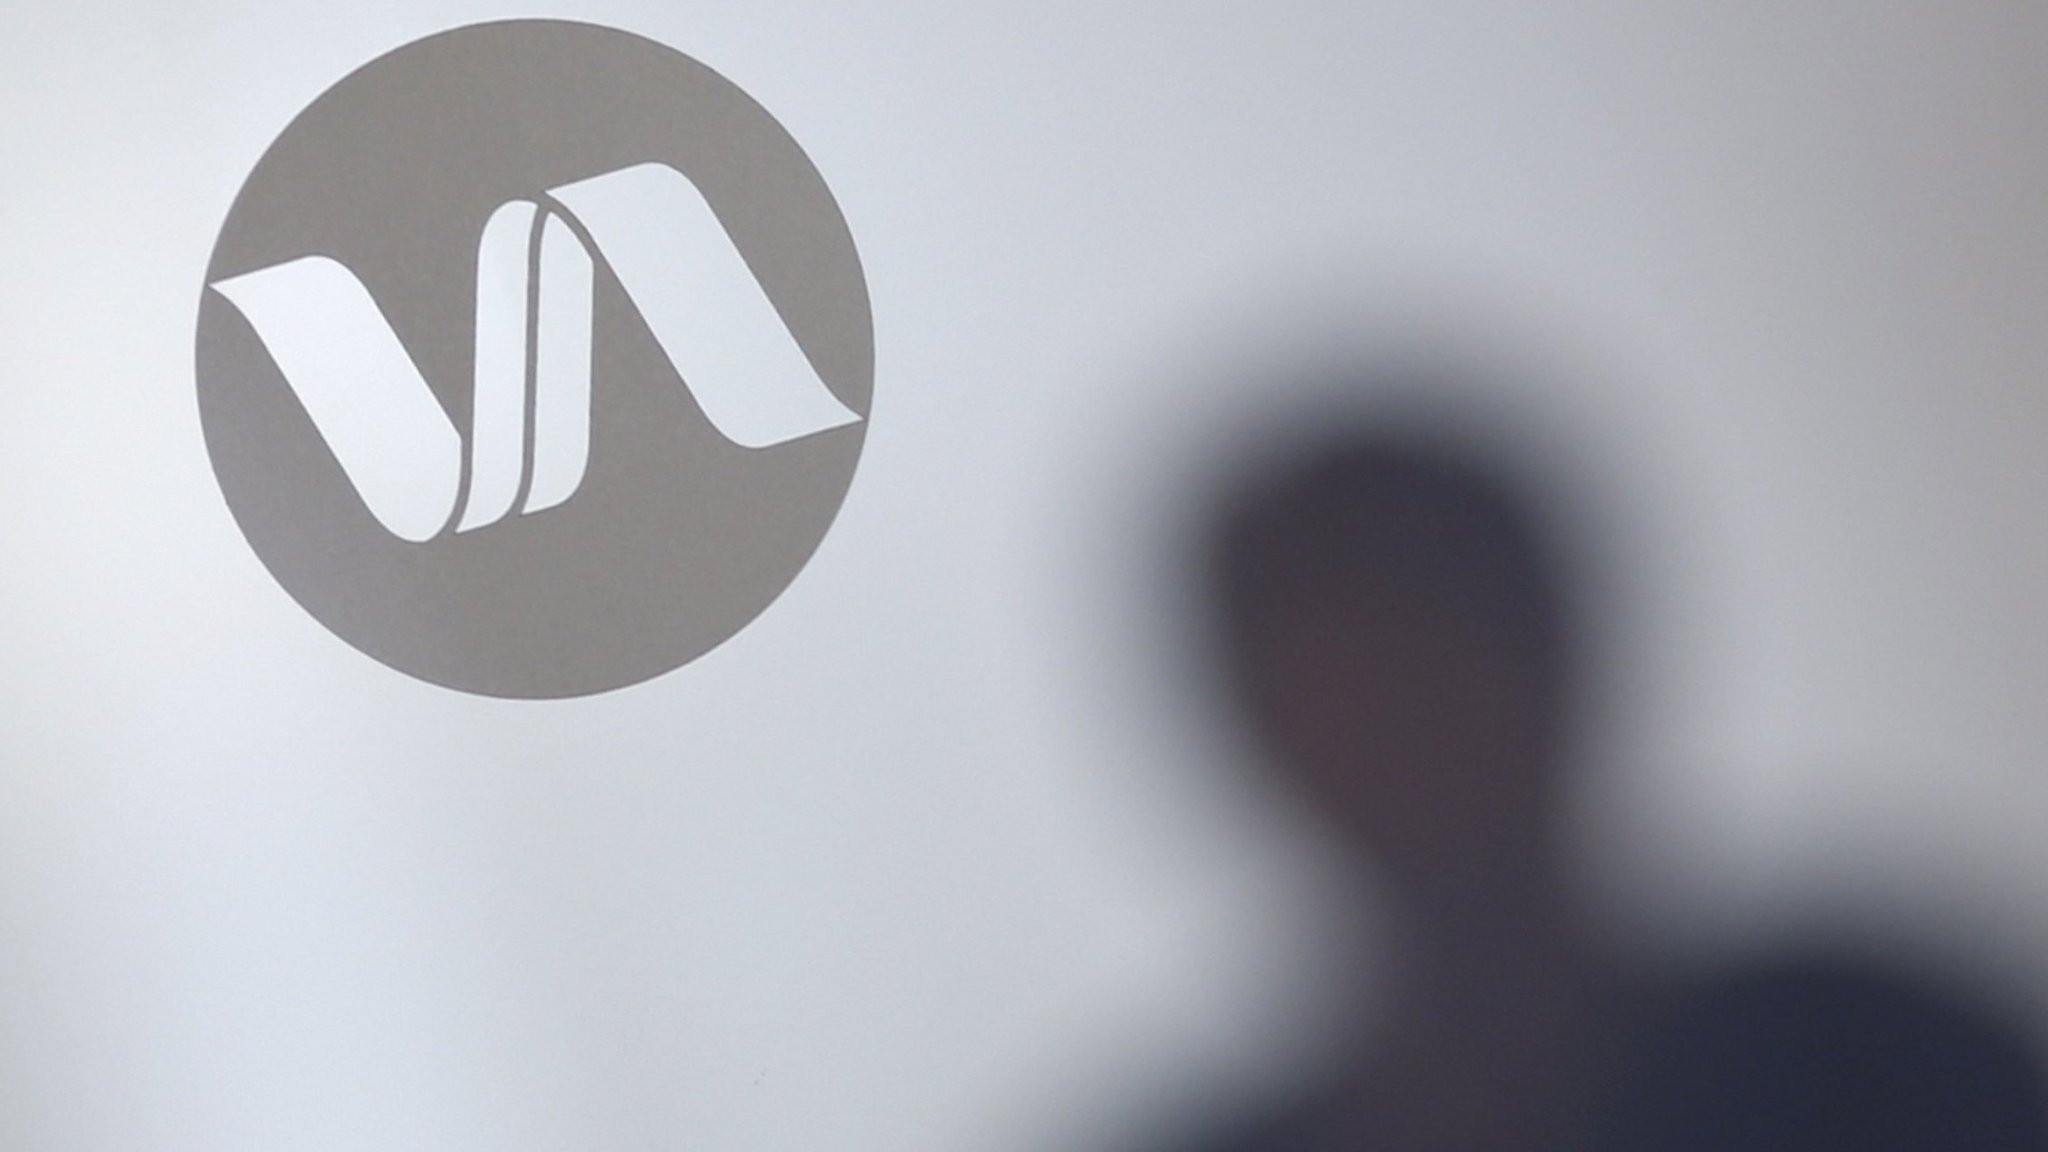 ft.com - Noble Group warns of $1.8bn loss as it unveils survival plan